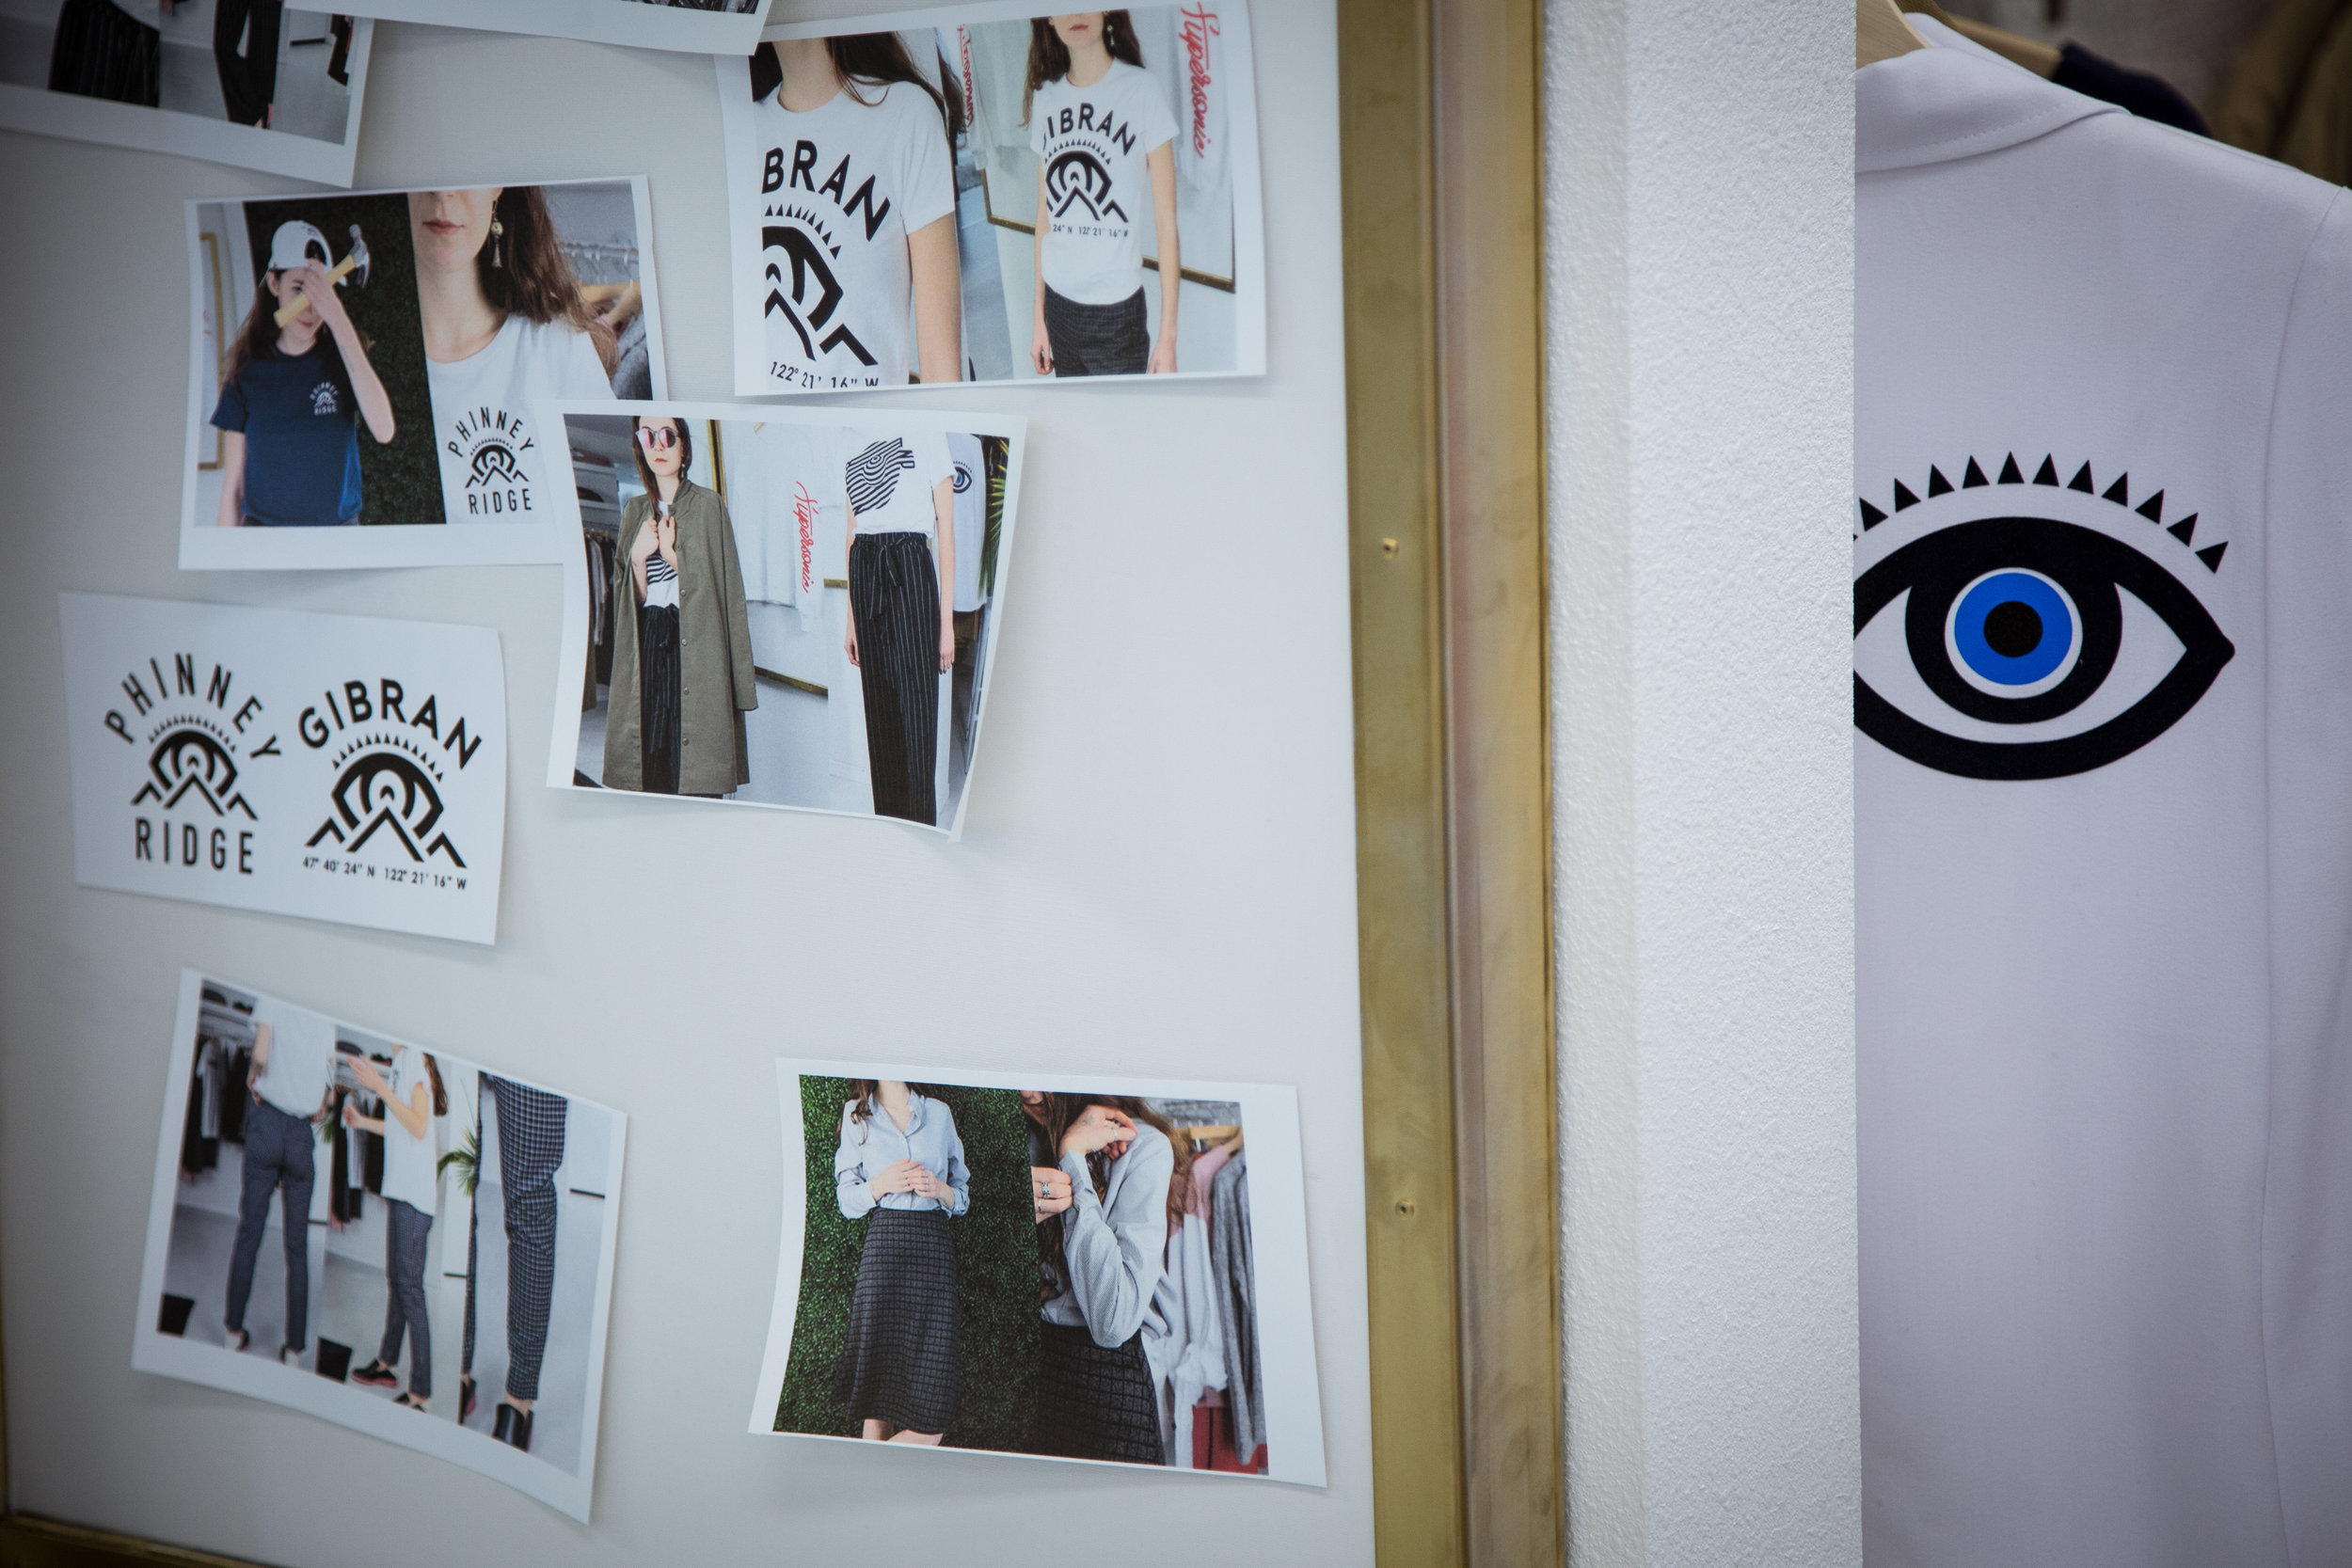 A shot of one of Gibran's look boards.